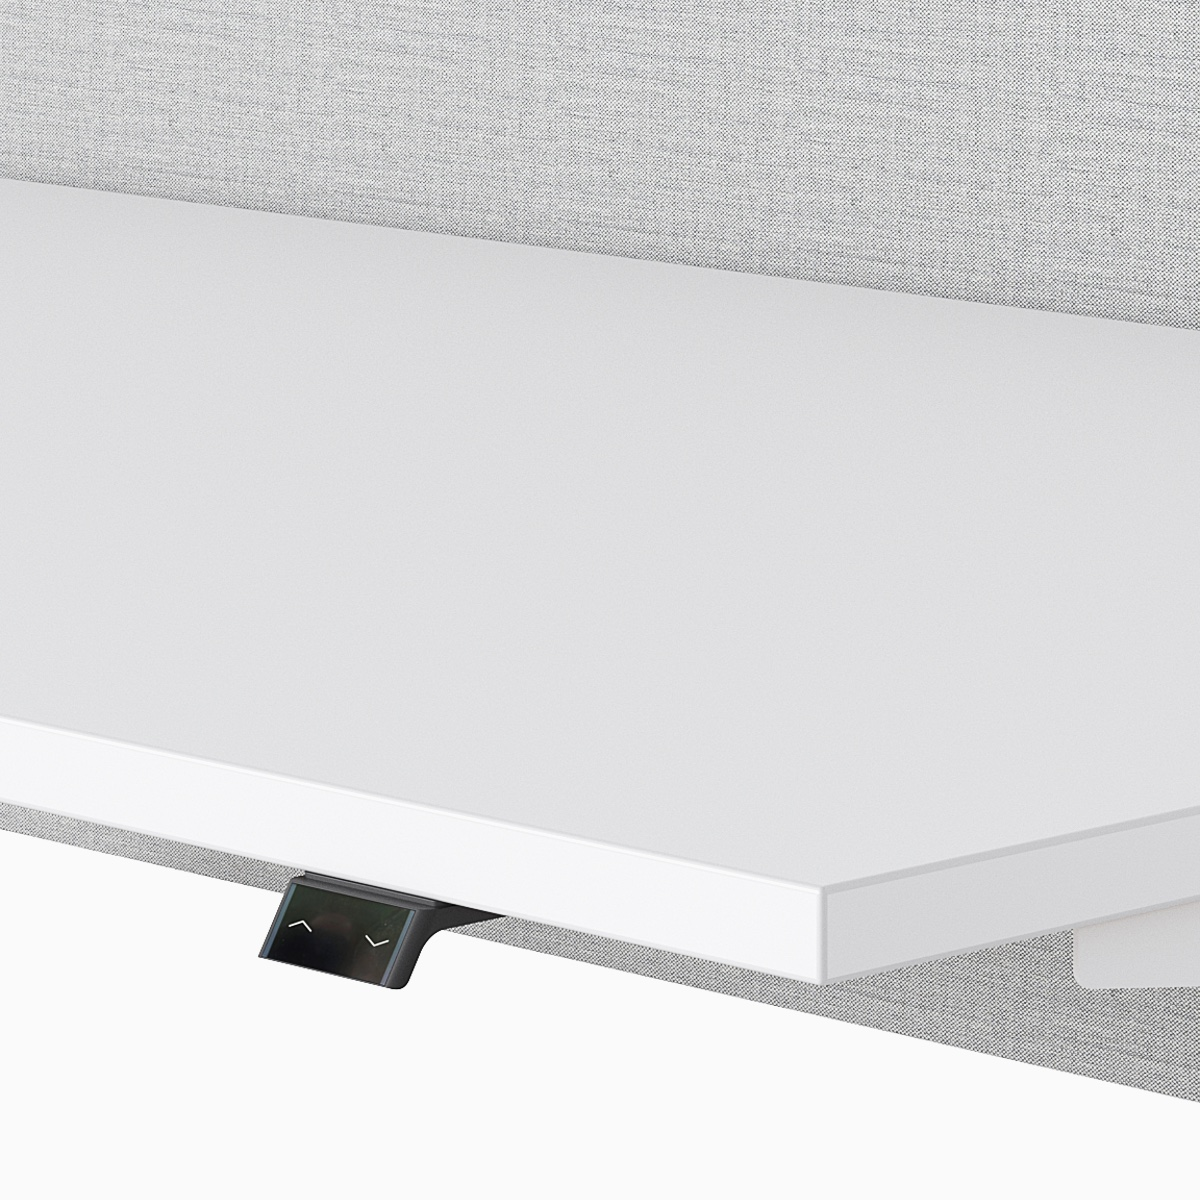 A close-up view of Nevi Sit-Stand Desk's switch that adjusts height.